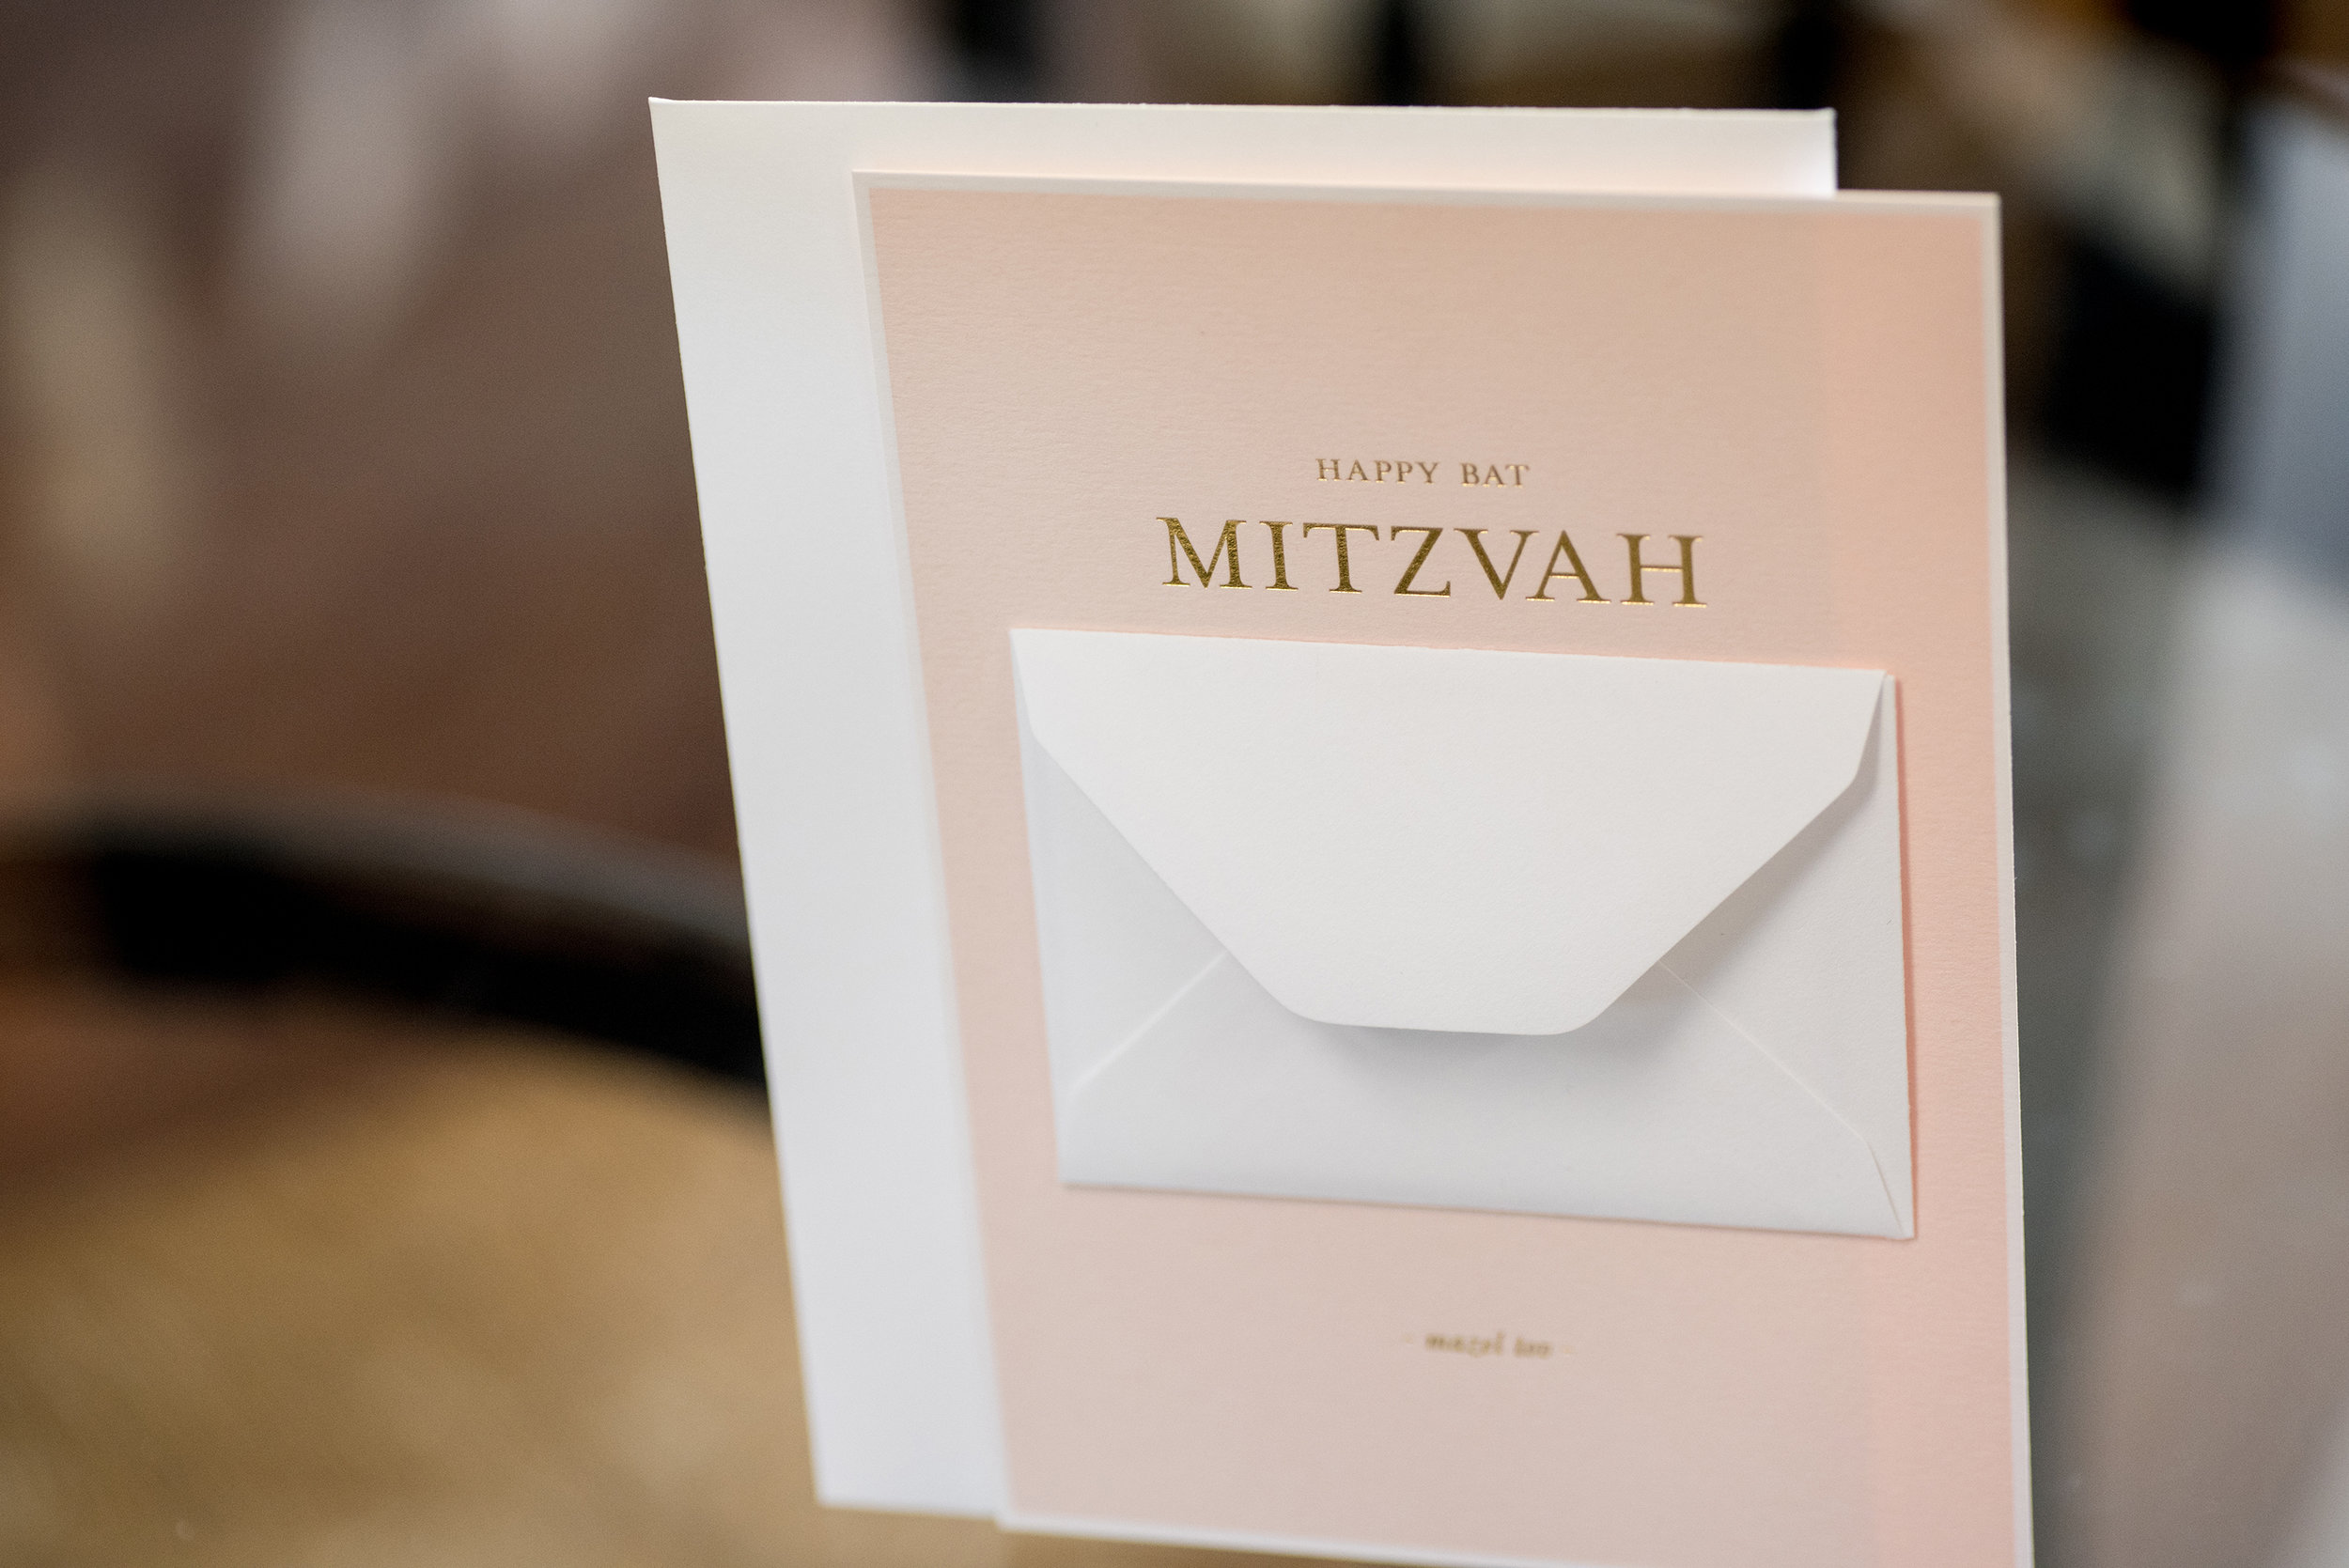 custom-stationery-celebration-batmitvah.jpg